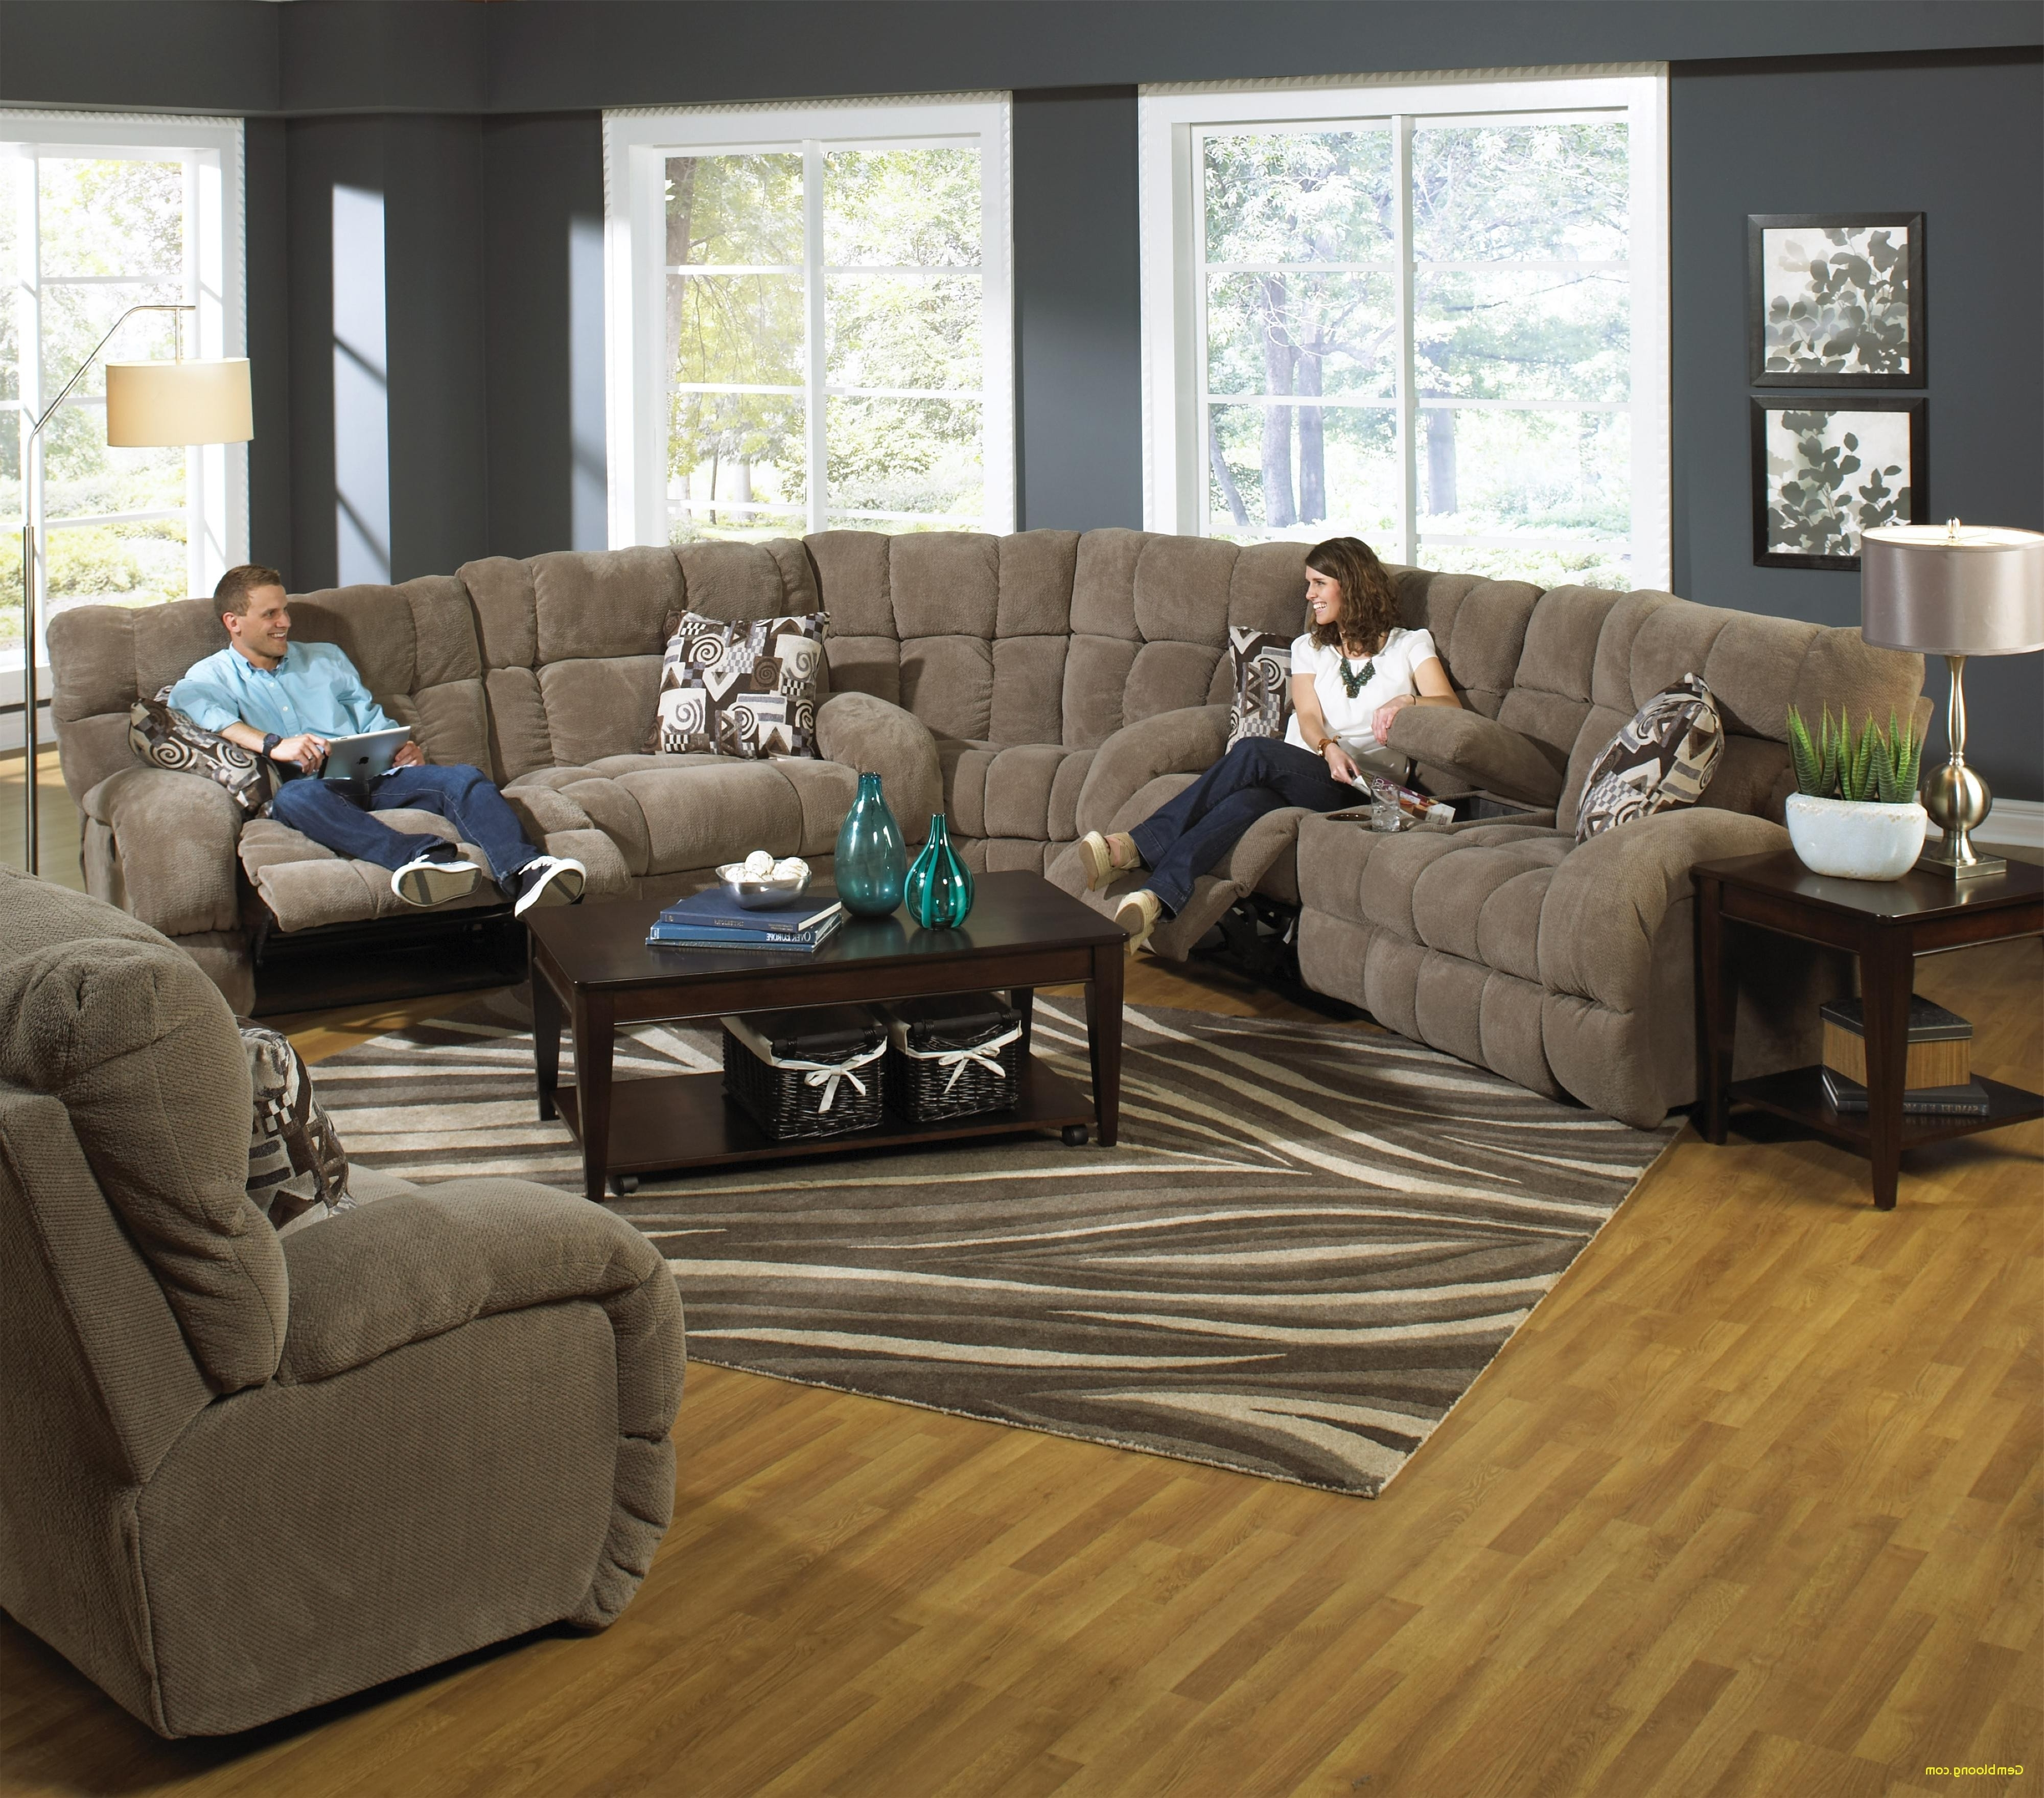 2018 Sleeper Sectionals With Chaise Beautiful Sleeper Sectional Sofa Intended For Sleeper Sectionals With Chaise (View 1 of 15)